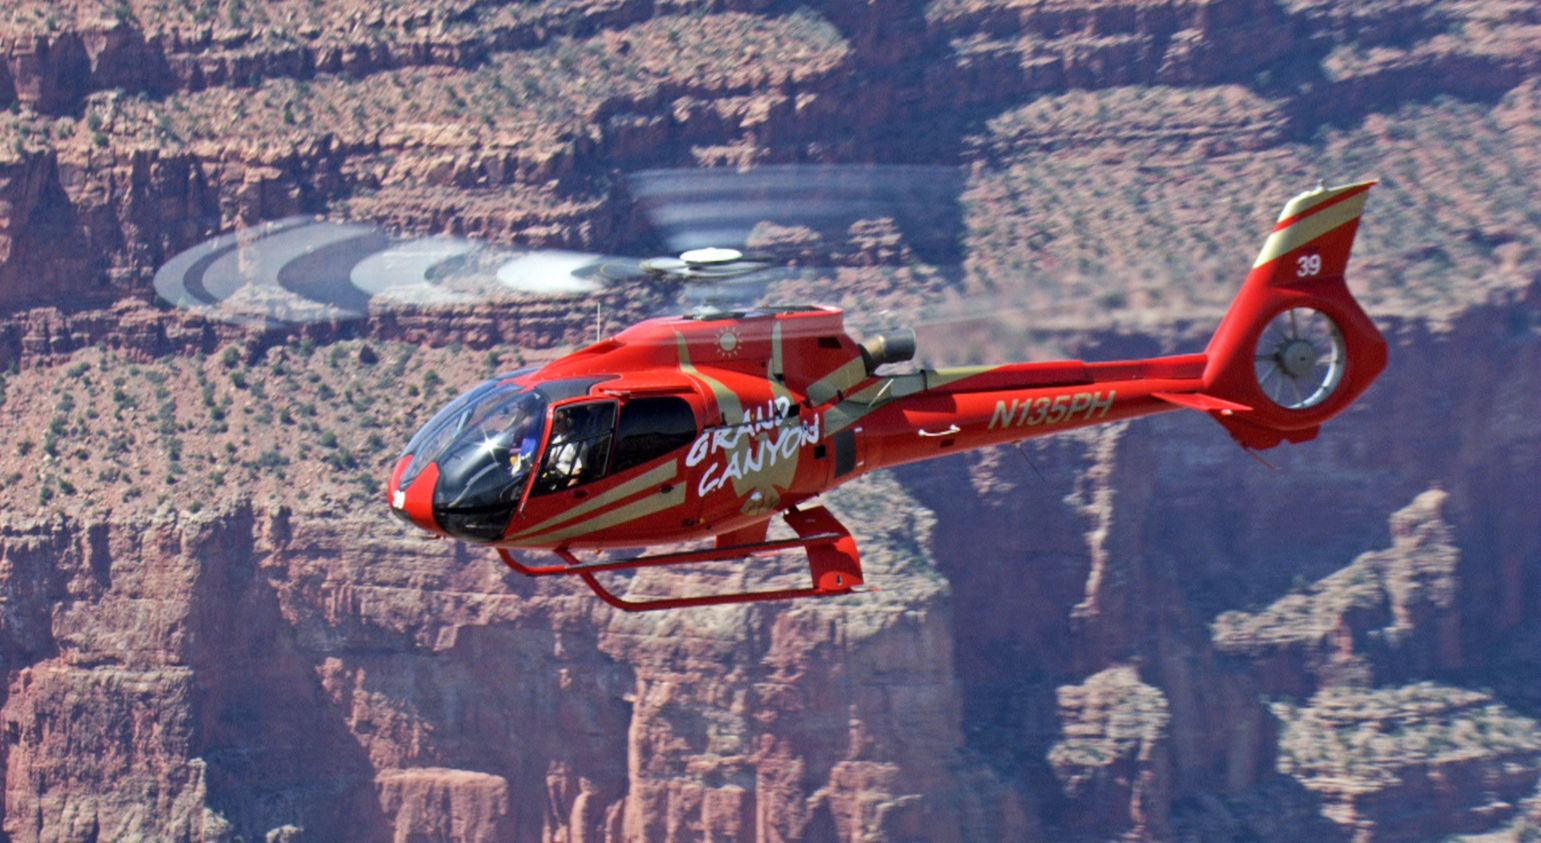 A red helicopter, central in the image, flies through the walls of the Grand Canyon.